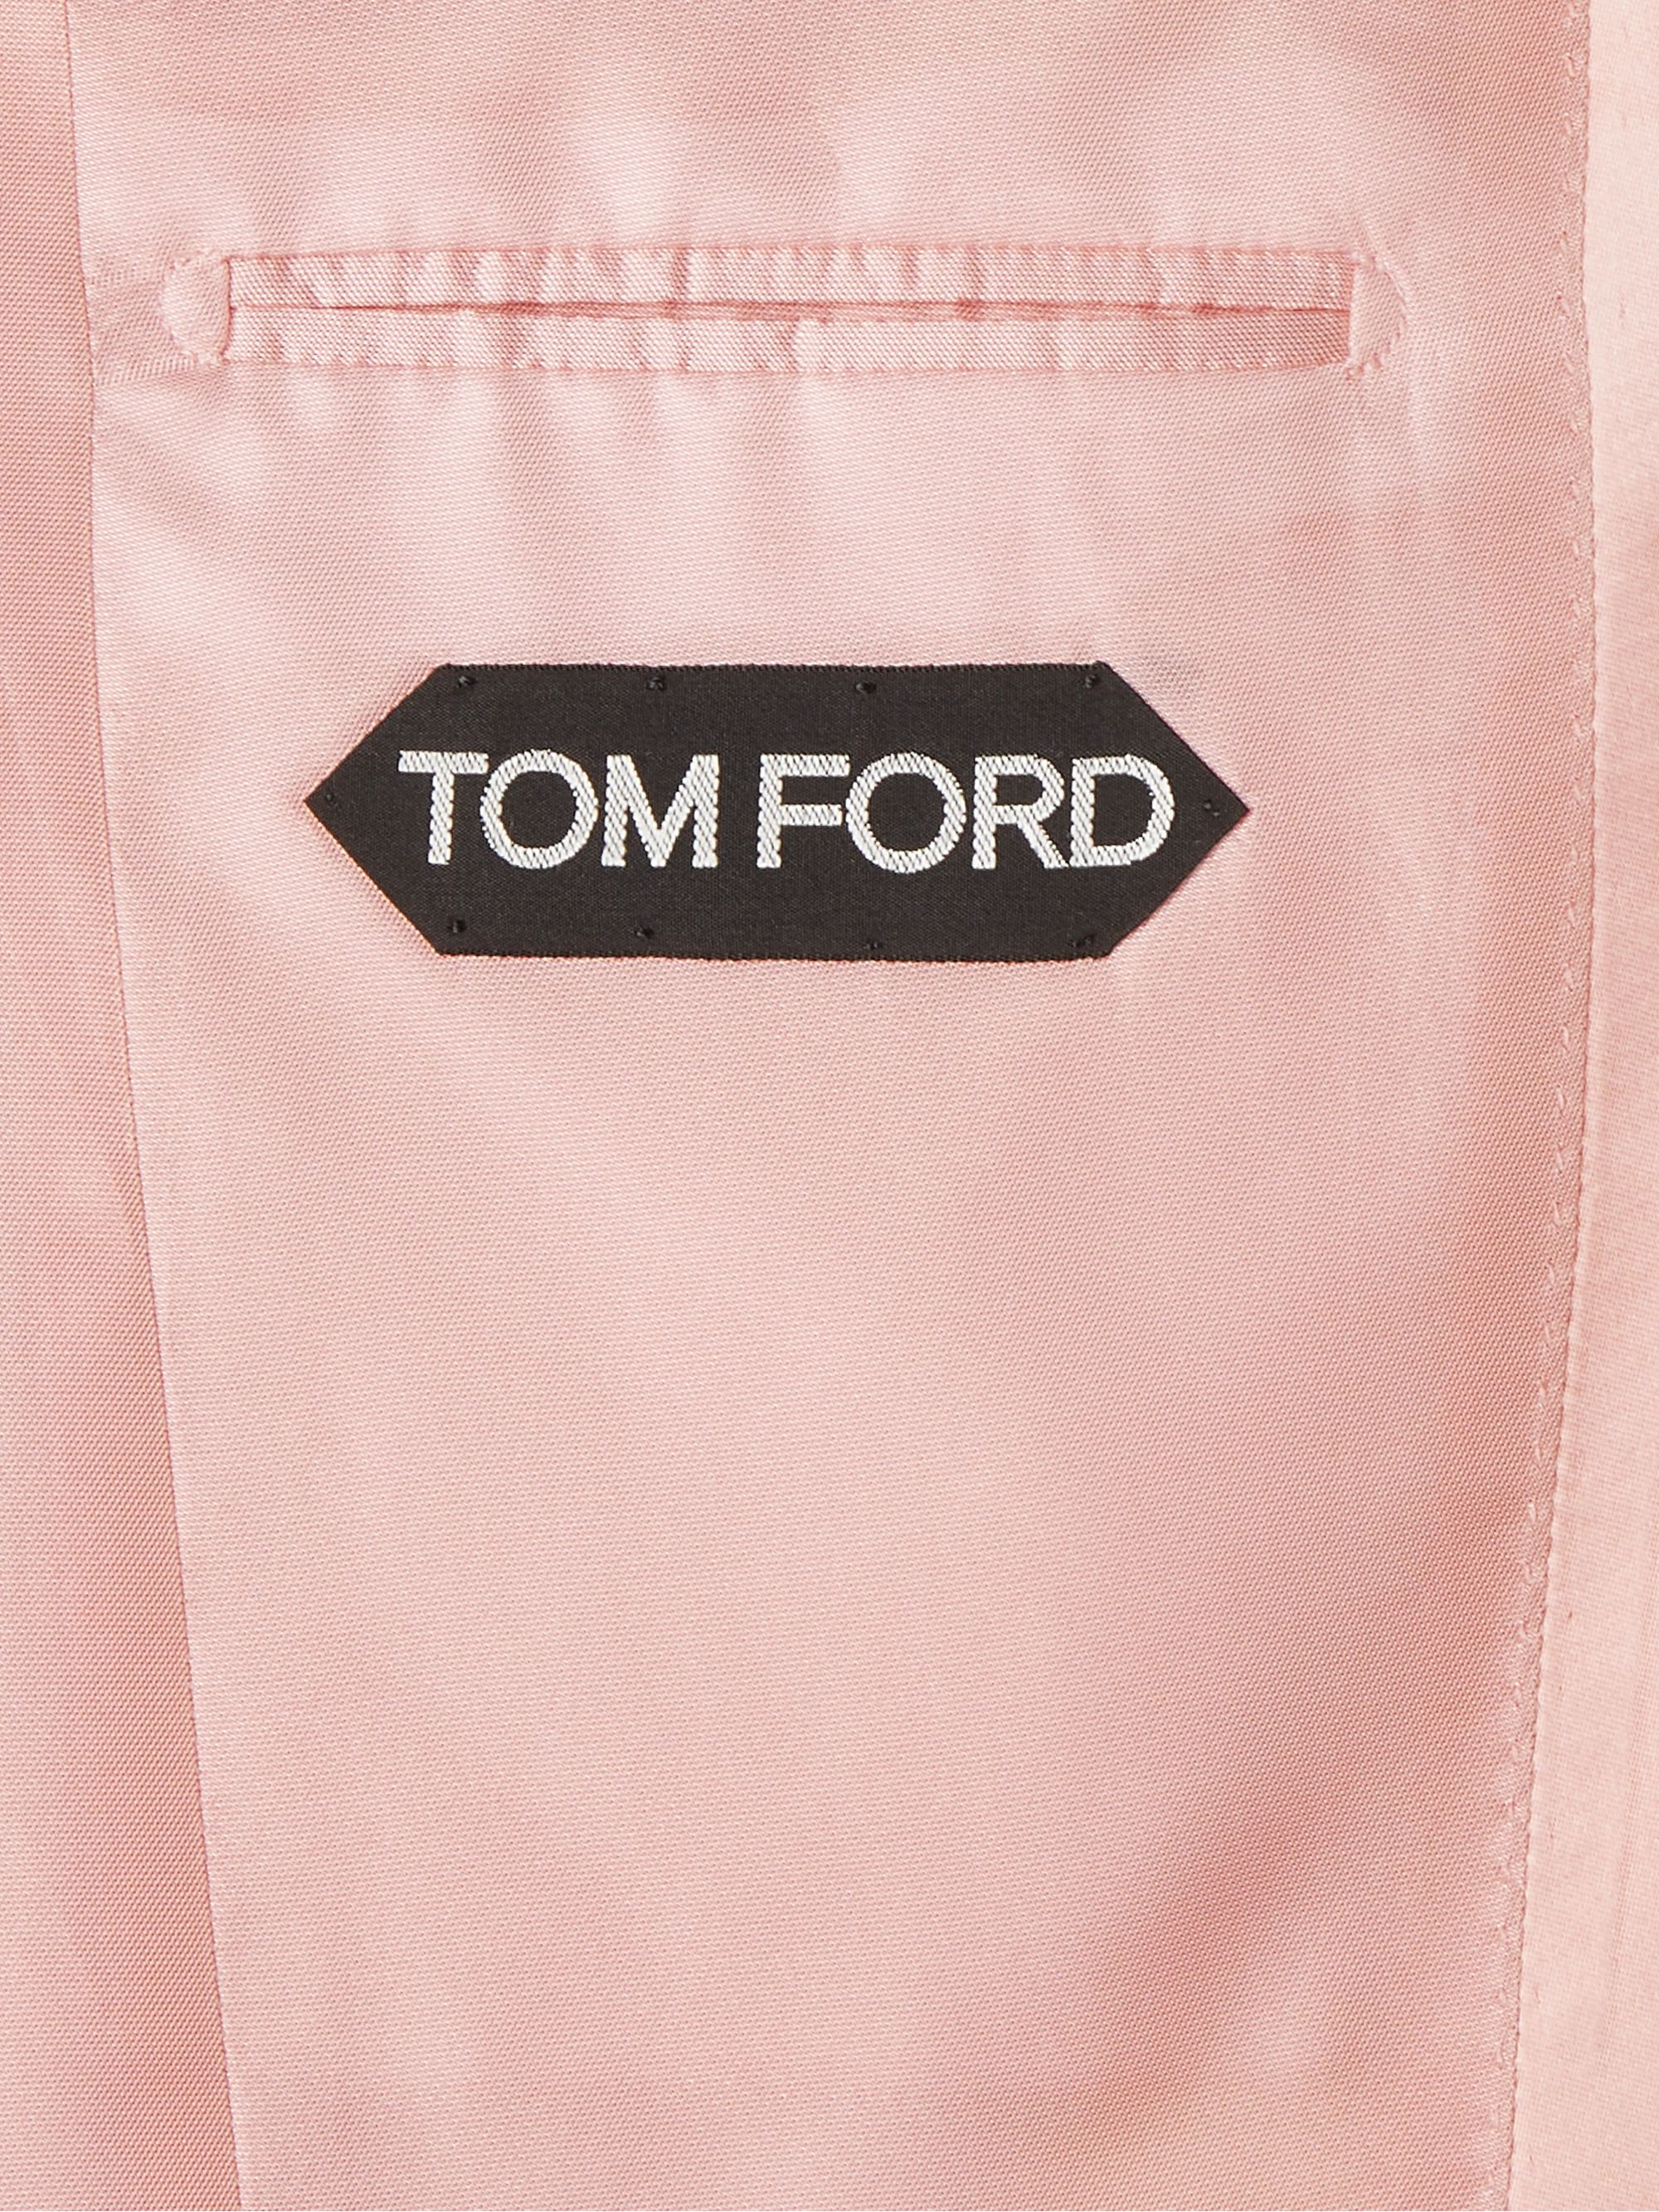 TOM FORD Atticus Satin-Trimmed Twill Tuxedo Jackt